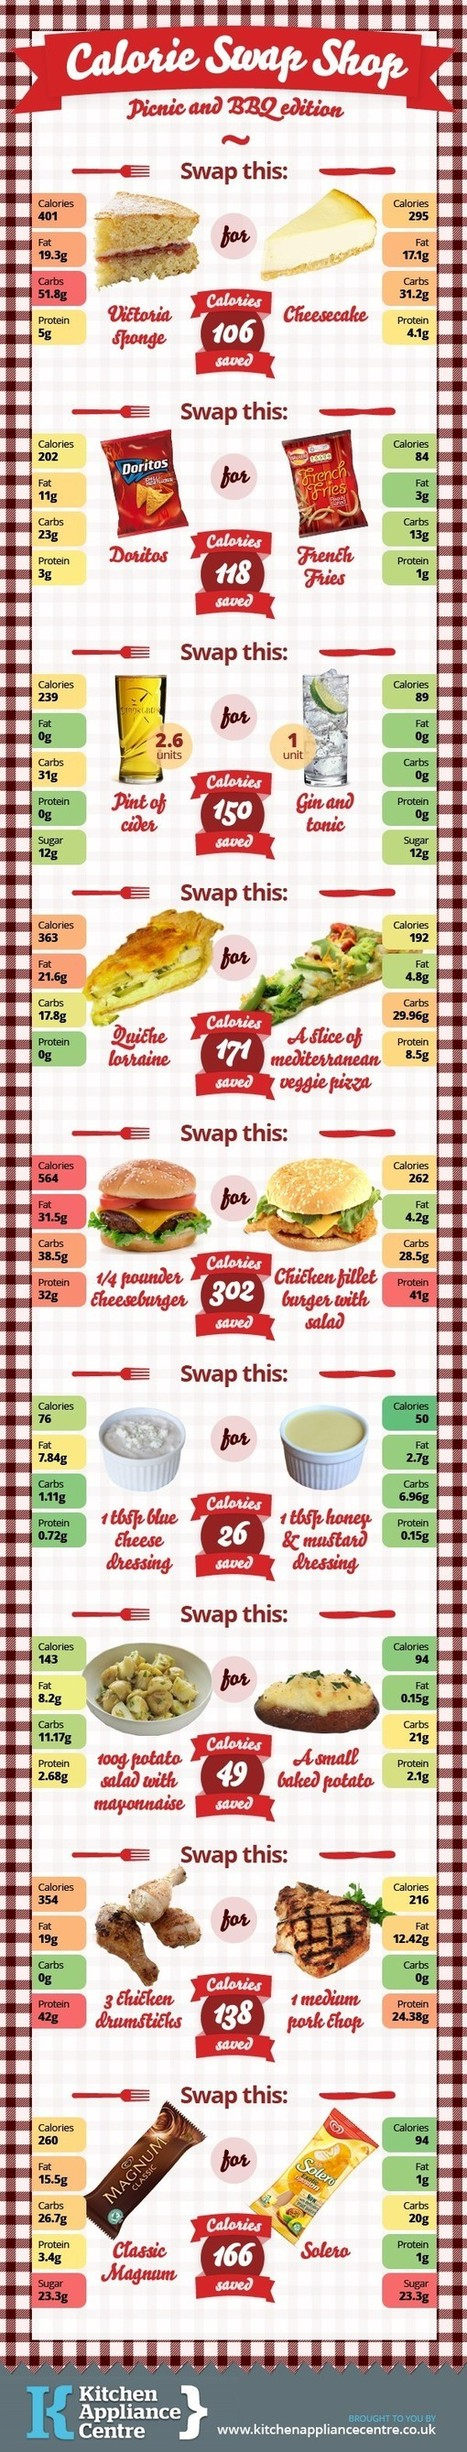 Health: How to Lower Your Calories with Calorie Swap Shop | Infographic | All Infographics | Scoop.it